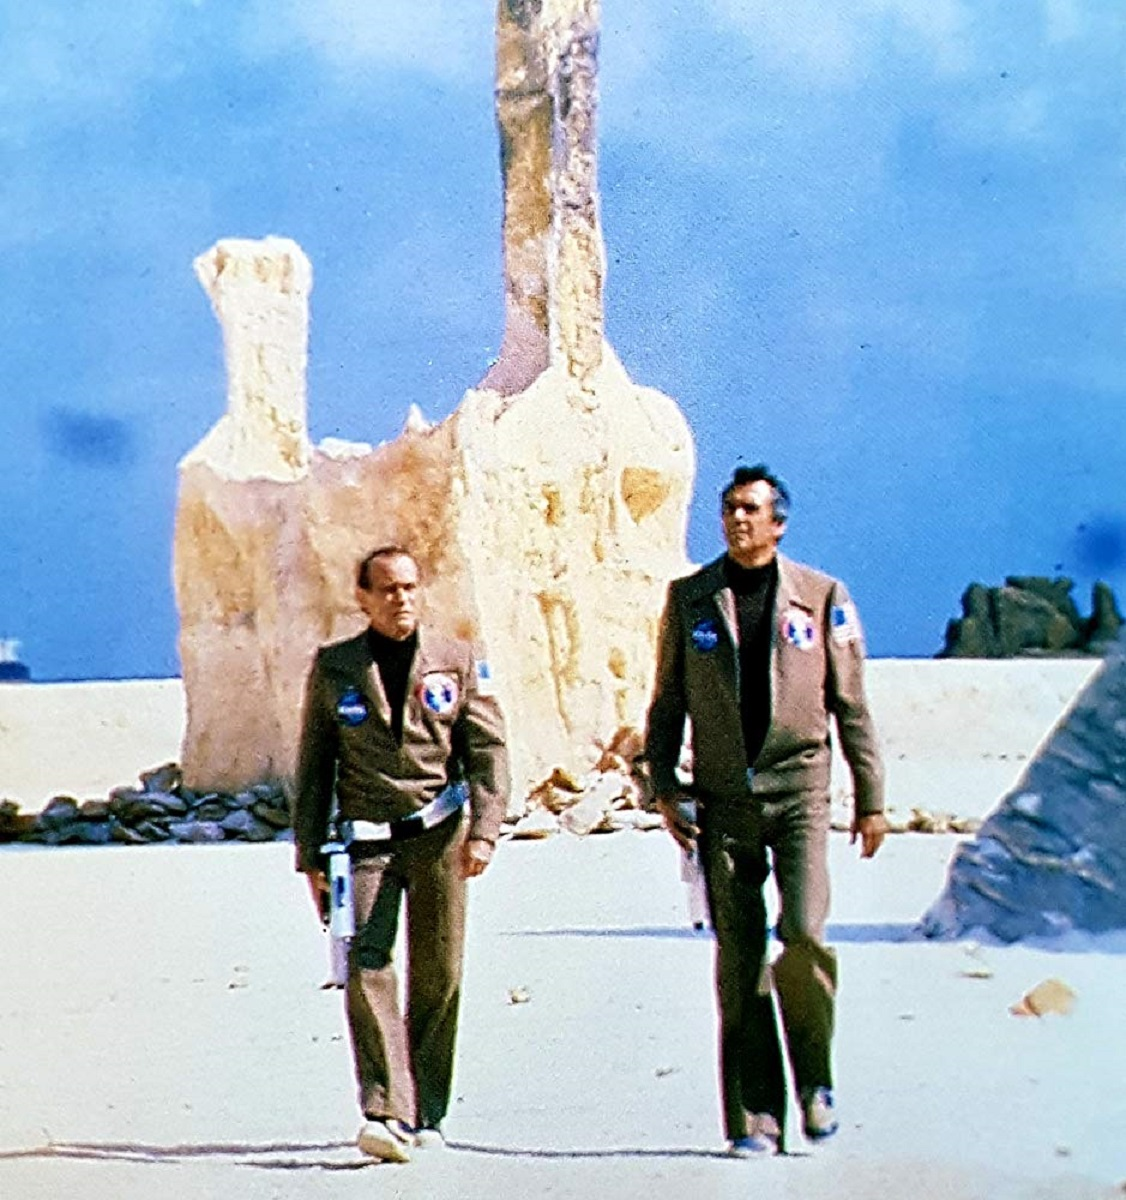 Darren McGavin and Rock Hudson on Mars in The Martian Chronicles (1980)